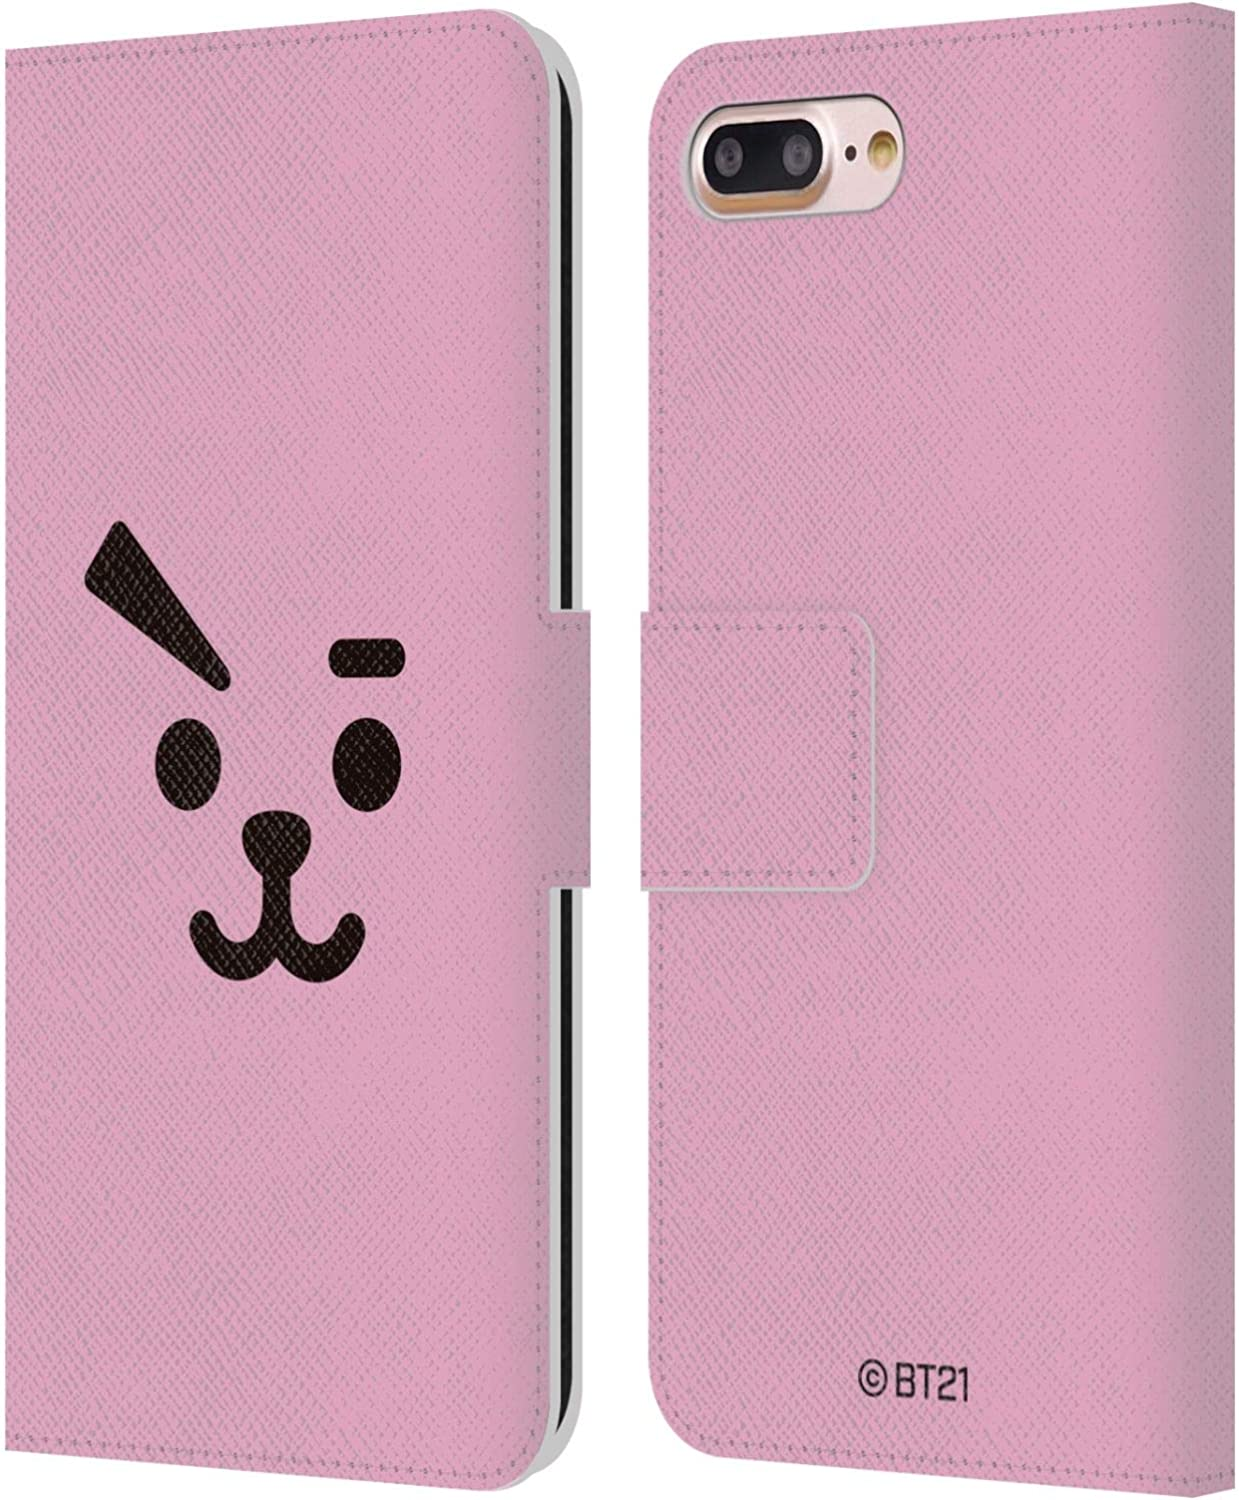 Head Case Designs Officially Licensed BT21 Line Friends Cooky Basic Faces Leather Book Wallet Case Cover Compatible with Apple iPhone 7 Plus/iPhone 8 Plus